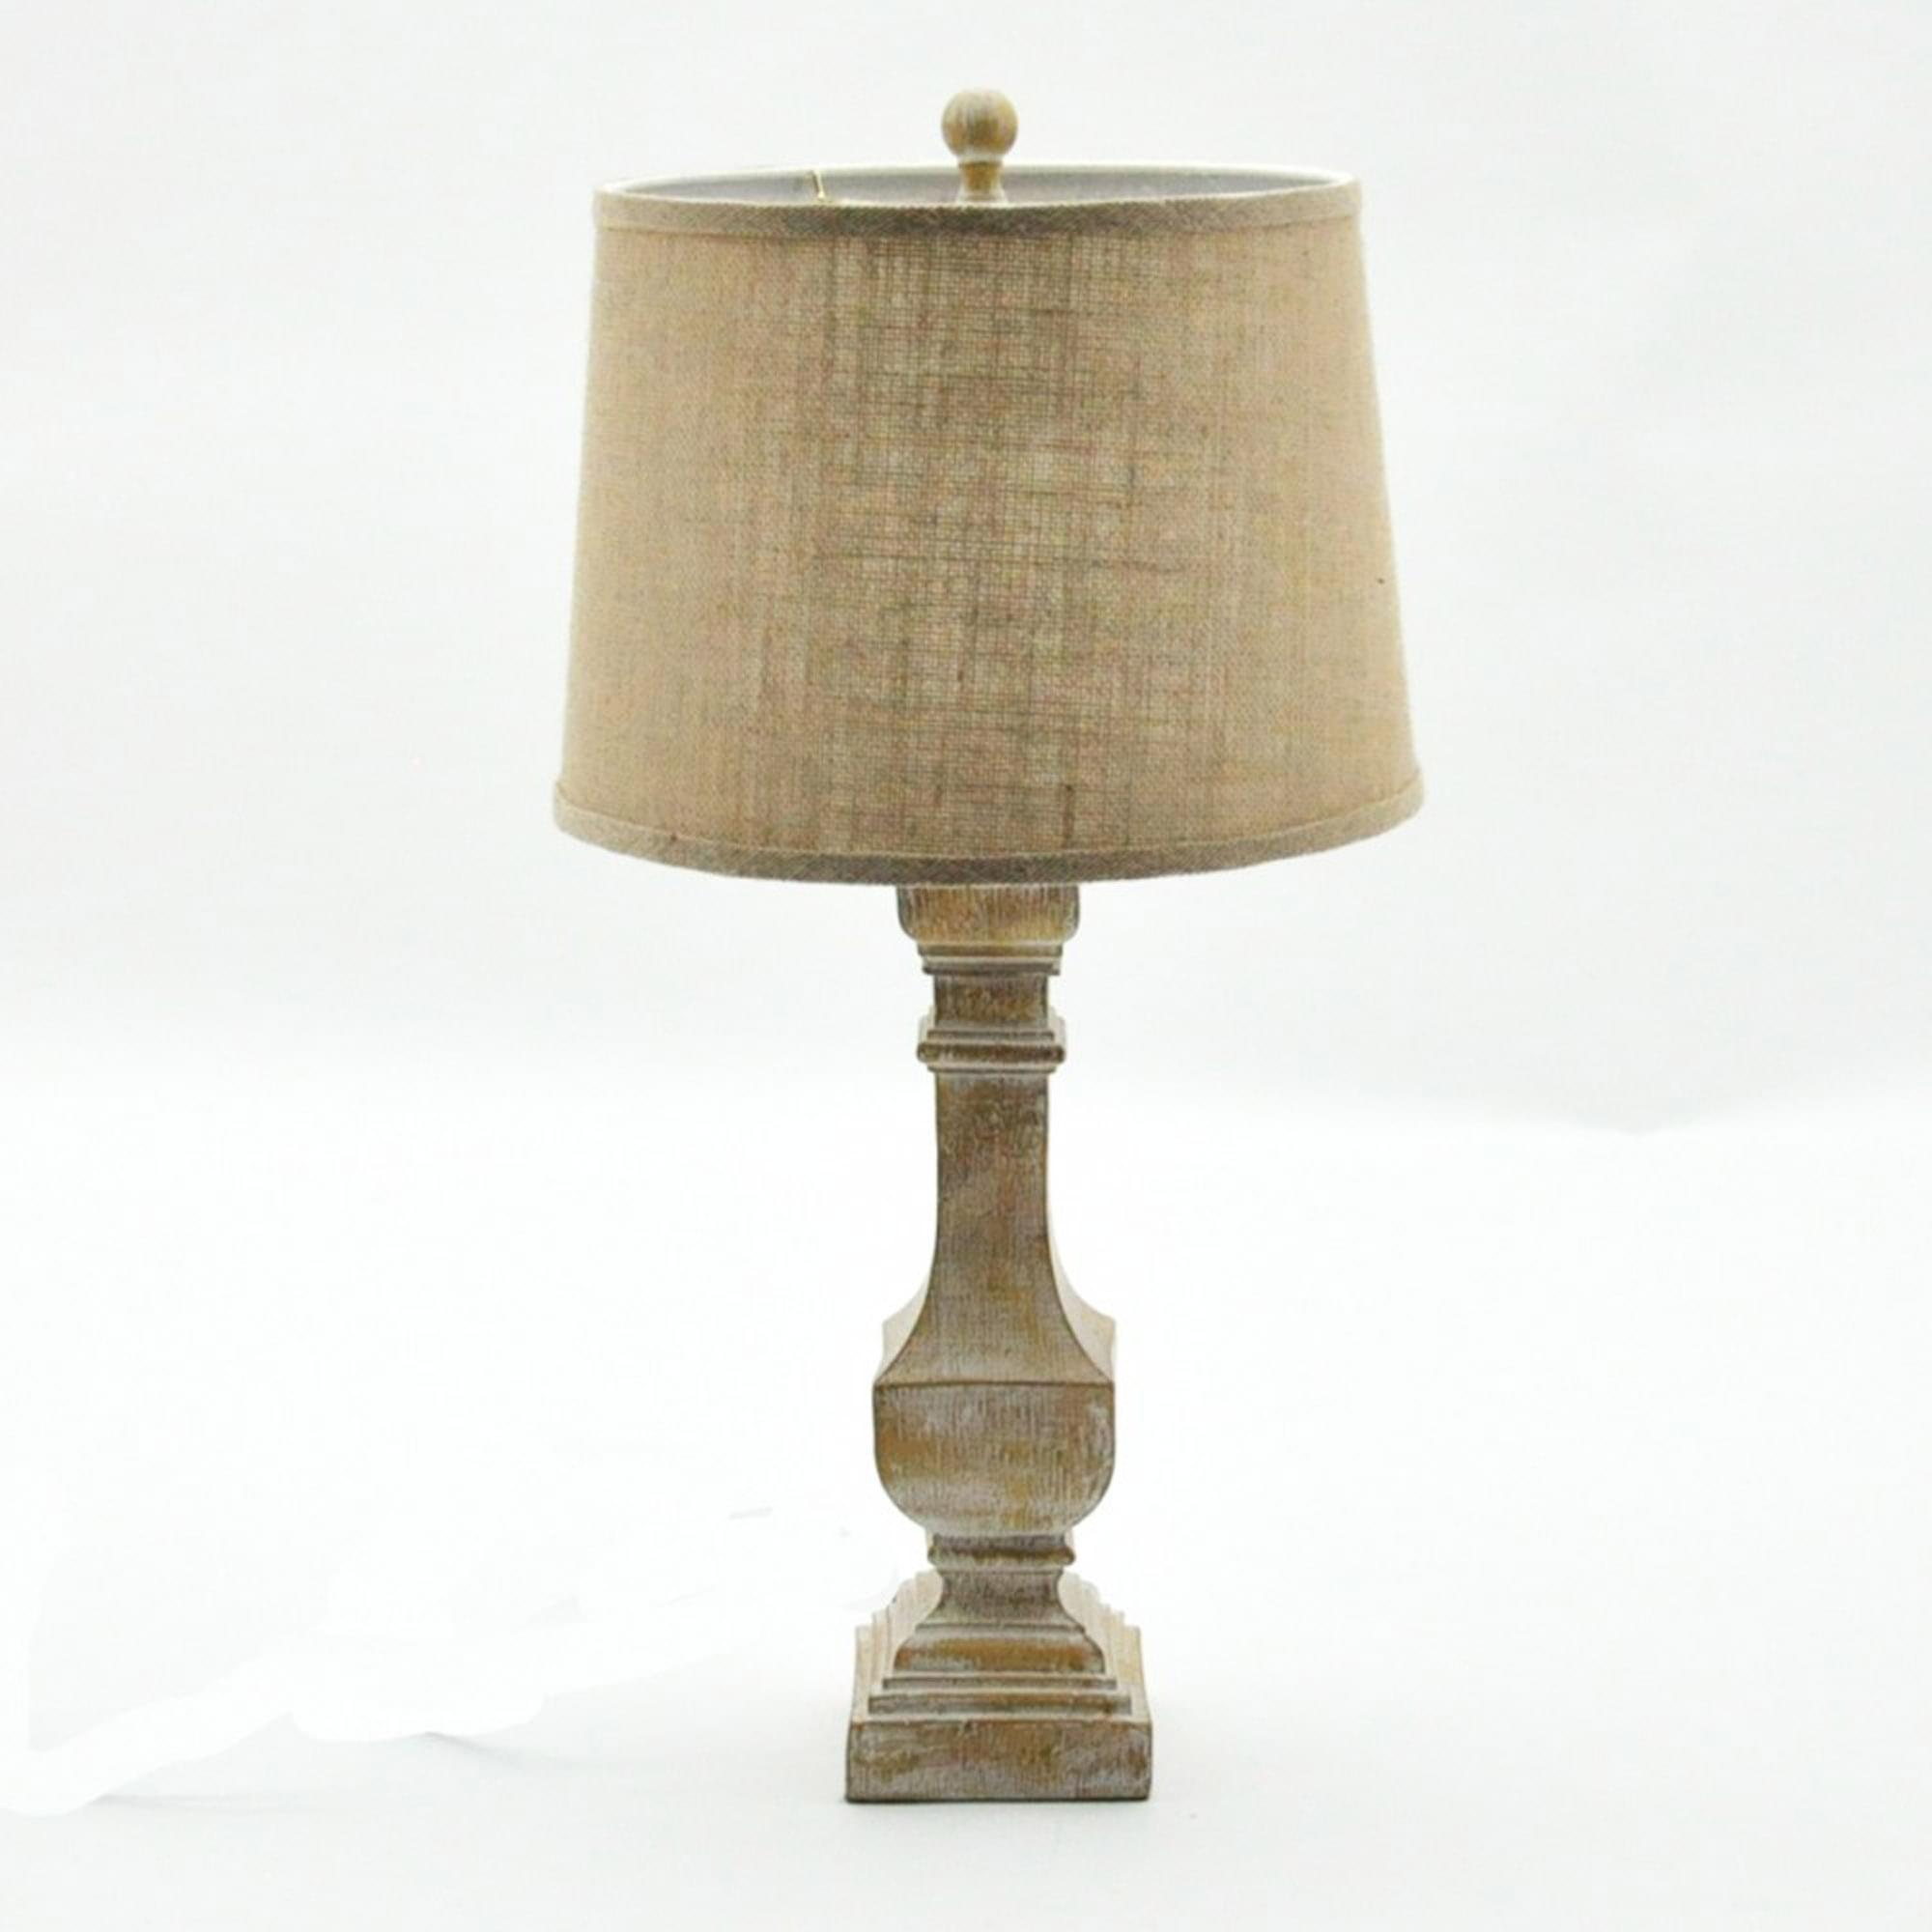 brown shabby chic table lamp table lamps antique french style rh homesdirect365 co uk shabby chic table lamps for bedroom uk shabby chic table lamps for living room